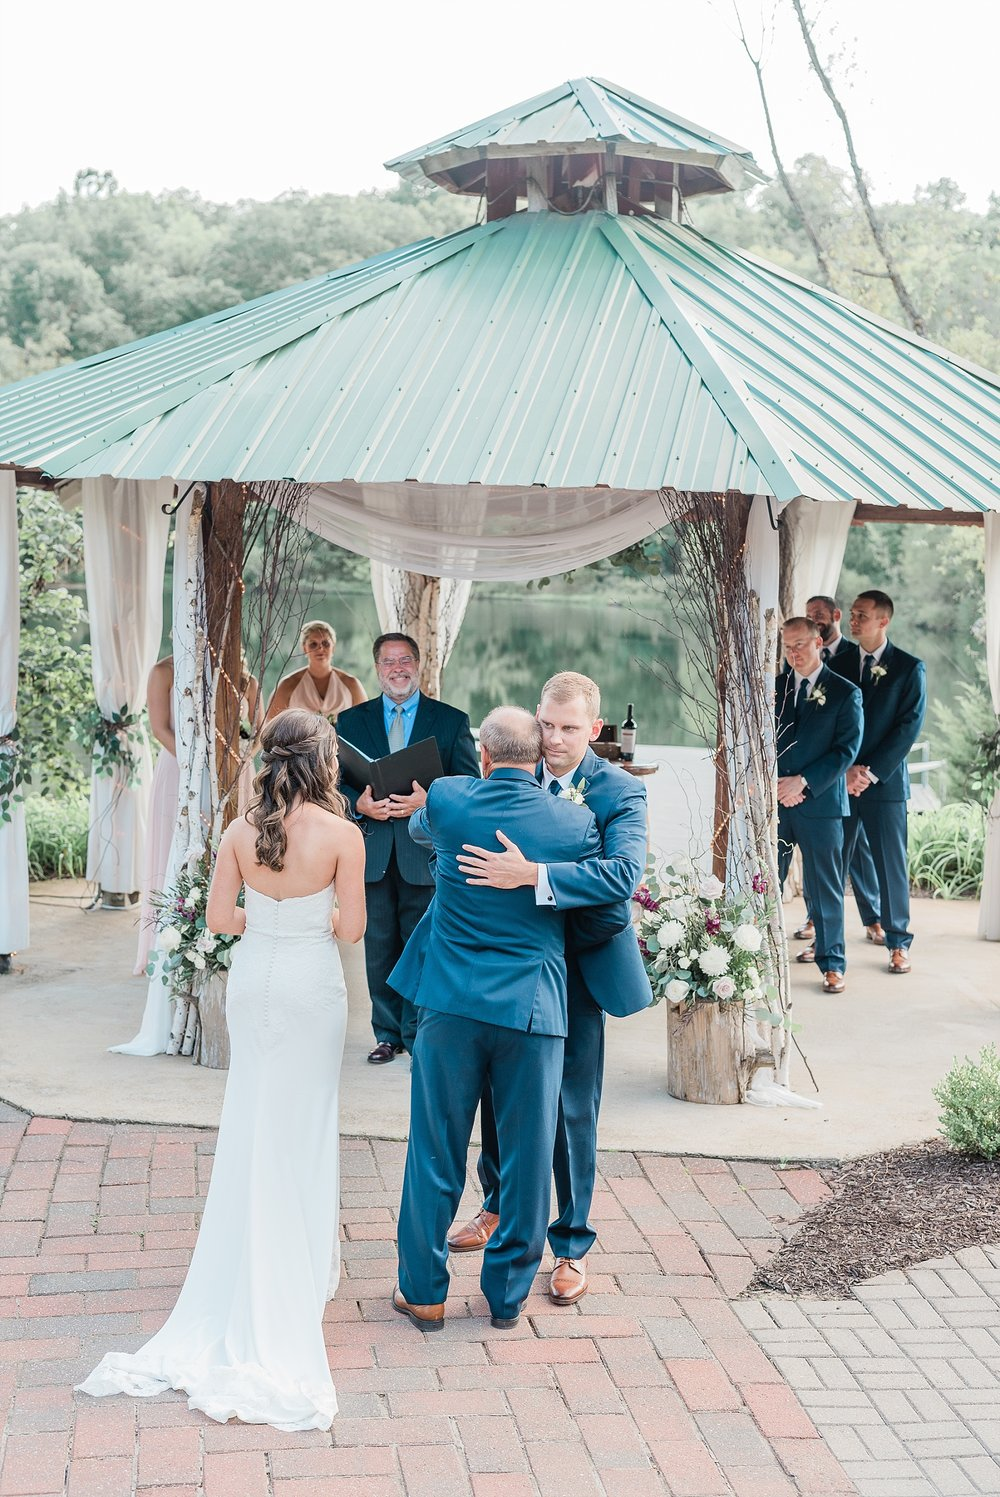 Romantic Summer Sunset Wedding Ceremony at Little Piney Lodge St. Louis Missouri by Kelsi Kliethermes Photography Fine Art Photographer_0055.jpg